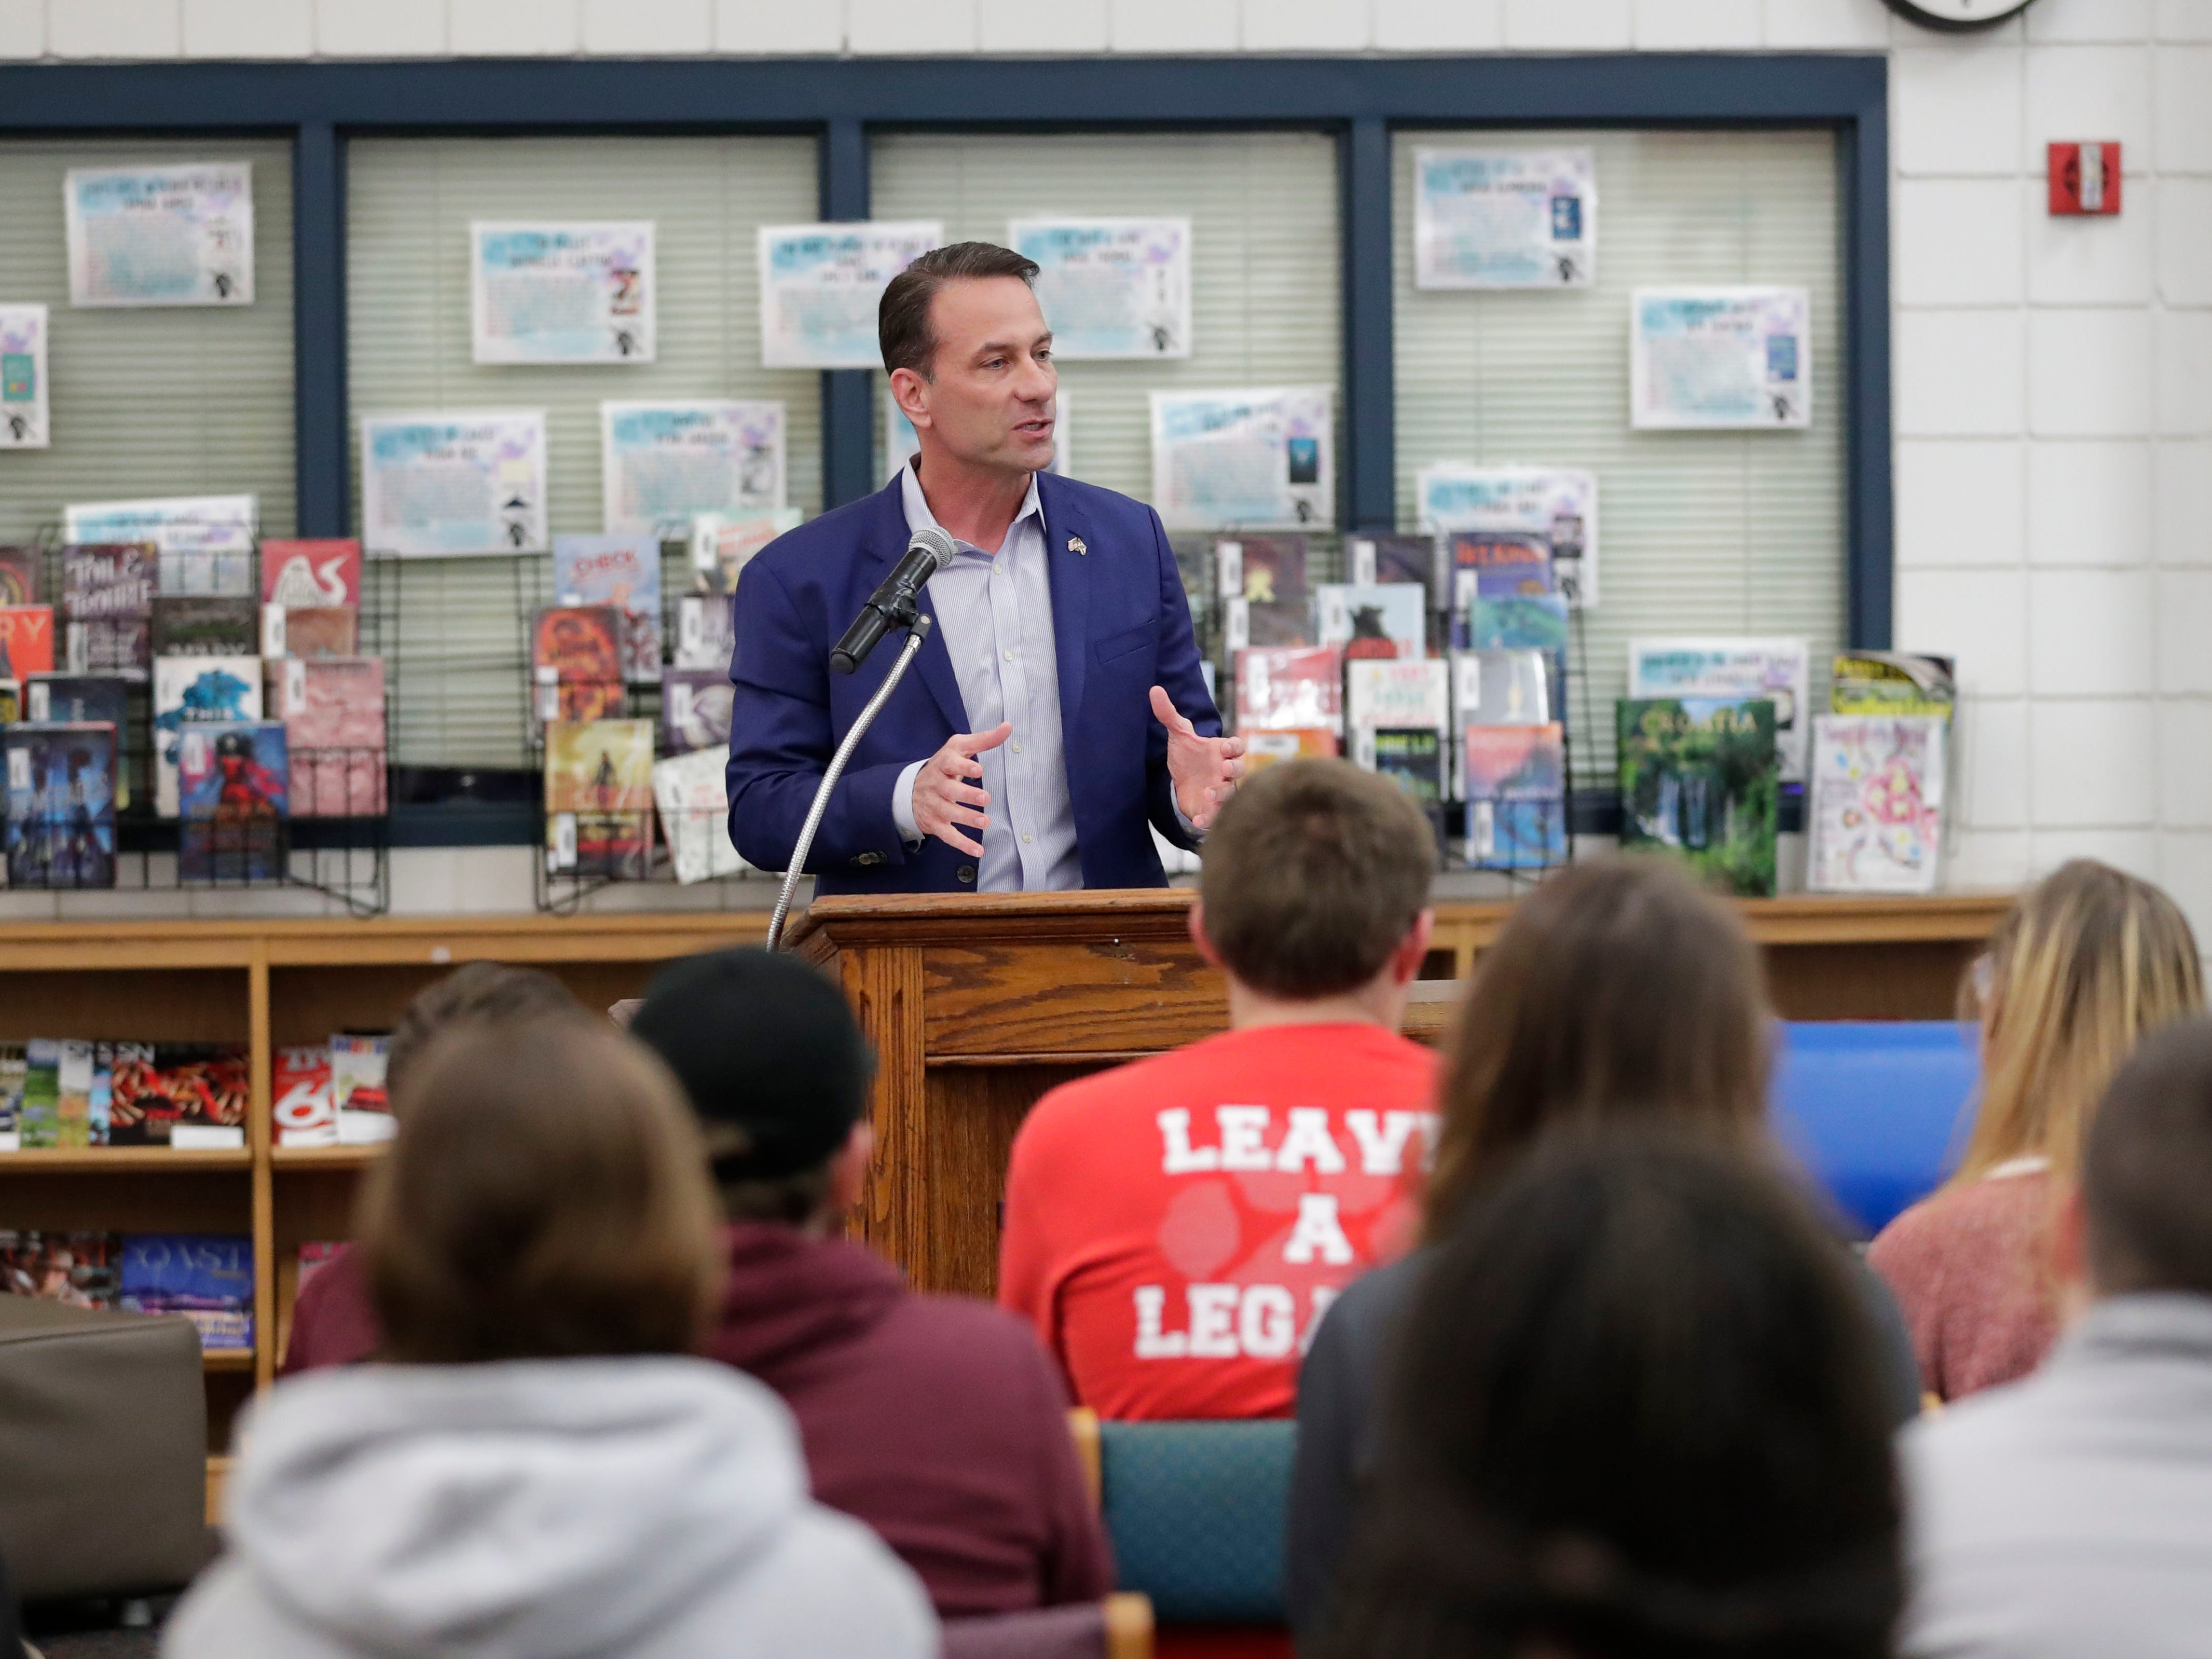 Mike Watkins, a candidate for House District Seven, speaks to Wakulla High School students about his campaign at a question and answer forum hosted by the Wakulla High Teenage Republicans Club and the Wakulla High Democrats Club Friday, Feb. 1, 2019.